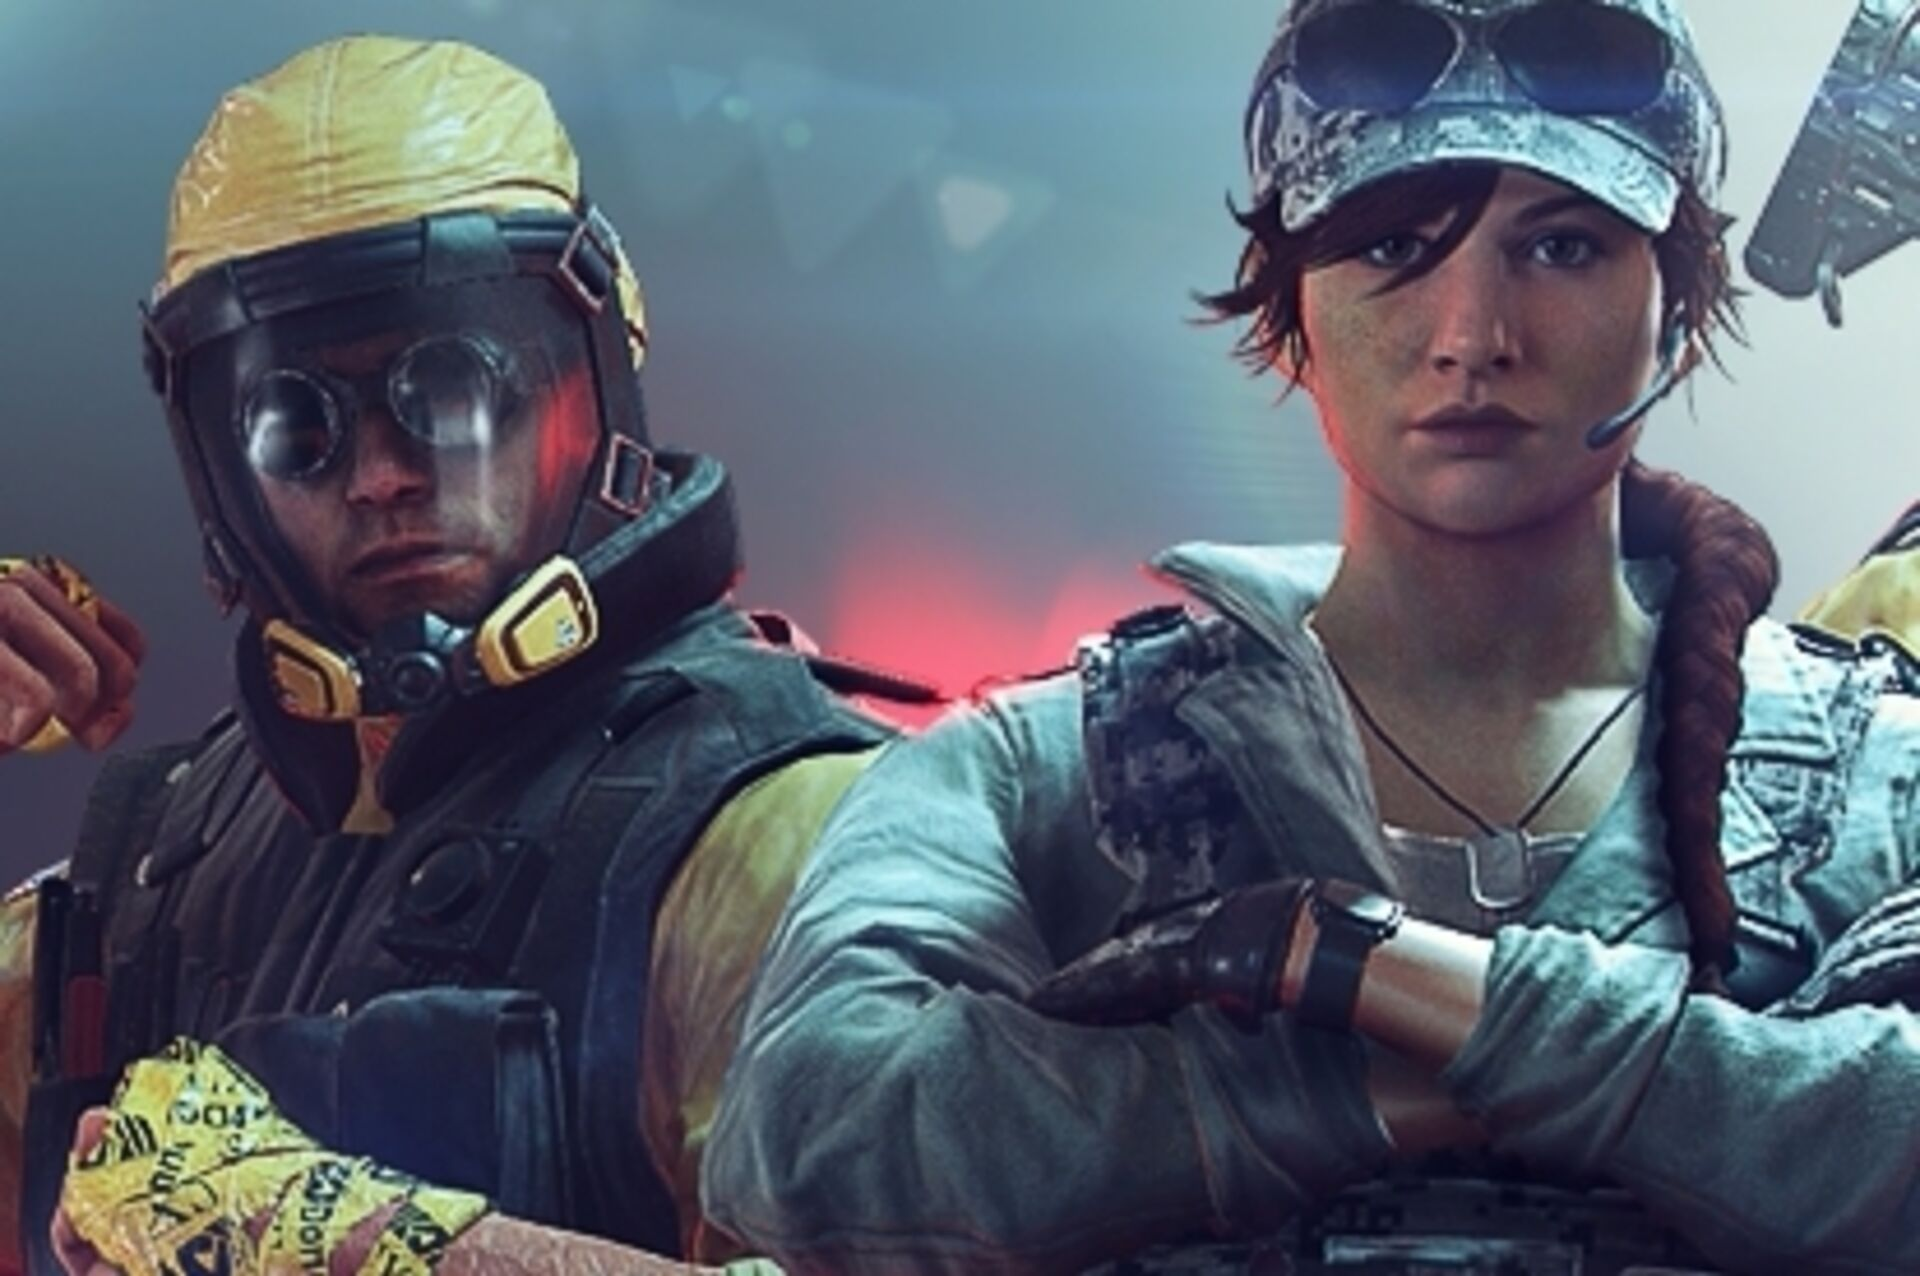 Rainbow Six Siege players unhappy at timed-event with paid